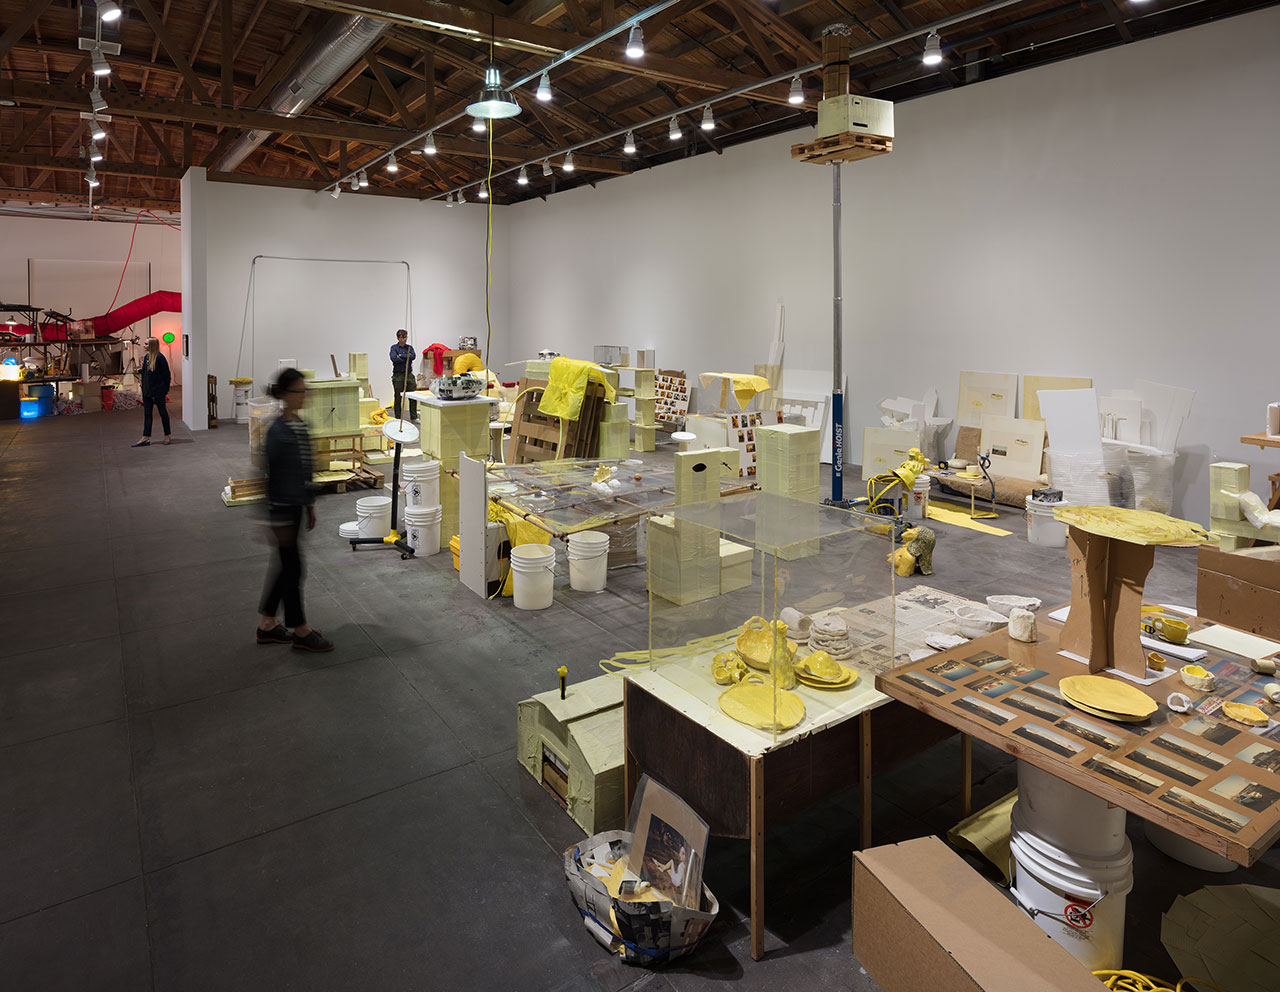 Jason Rhoades, Swedish Erotica and Fiero Parts, 1994. Mixed media. Dimensions variable. Installation view, 'Jason Rhoades. Installations, 1994 – 2006'. Hauser & Wirth Los Angeles, 2017 © The Estate of Jason Rhoades. Courtesy the estate, Hauser & Wirth, Private Collection, Switzerland and lenders. Photo by Fredrik Nilsen.